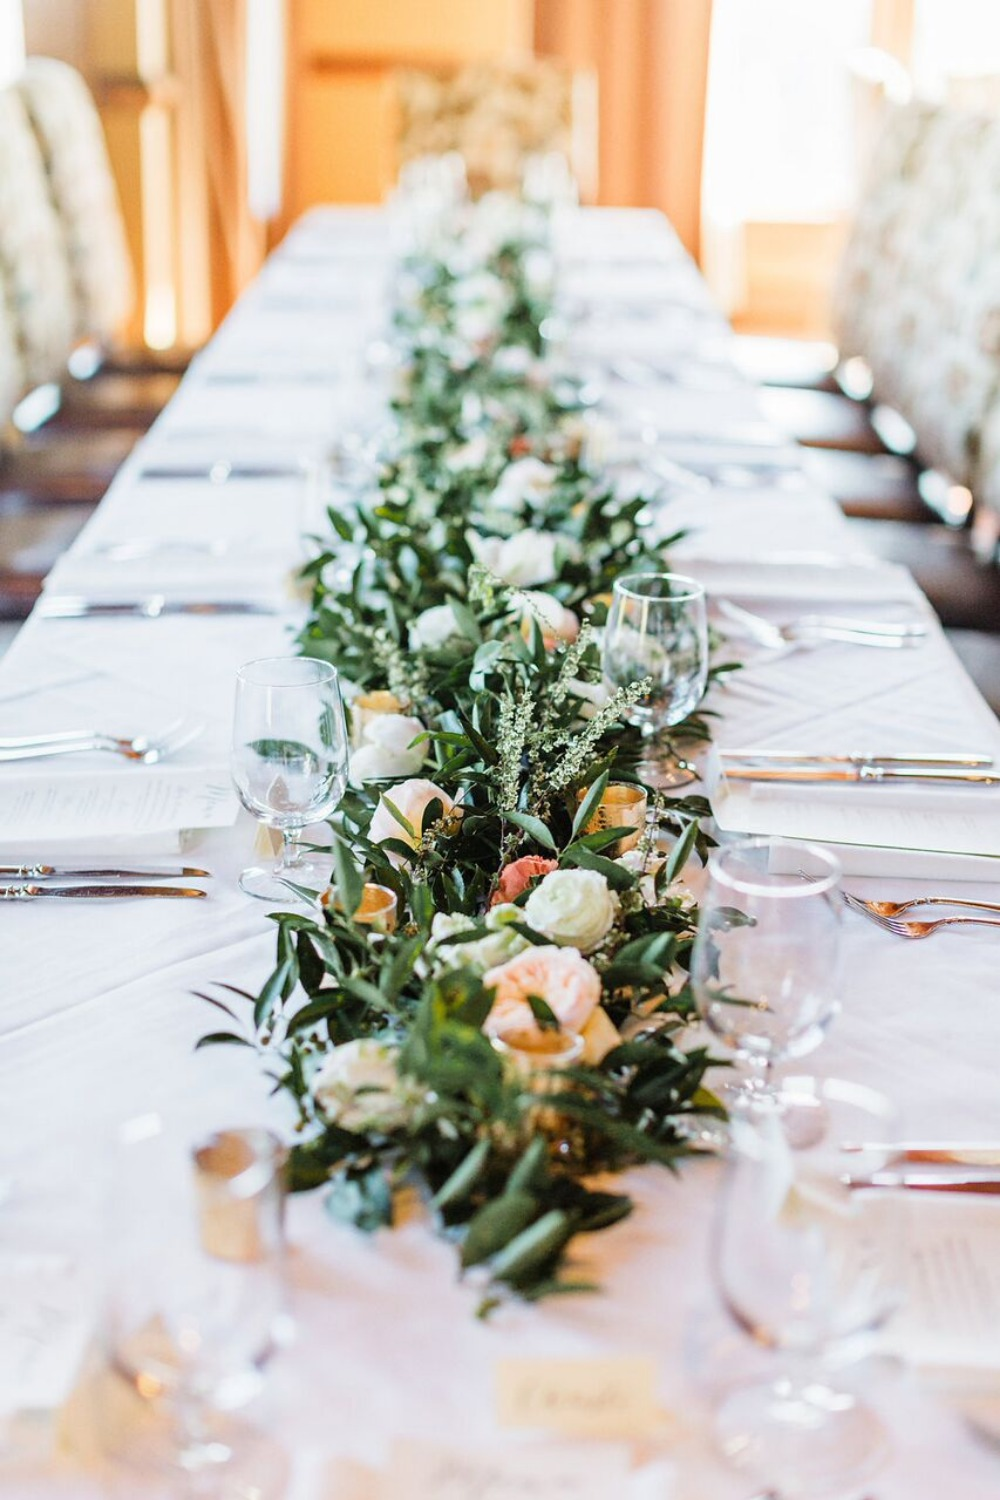 Low floral centerpiece idea